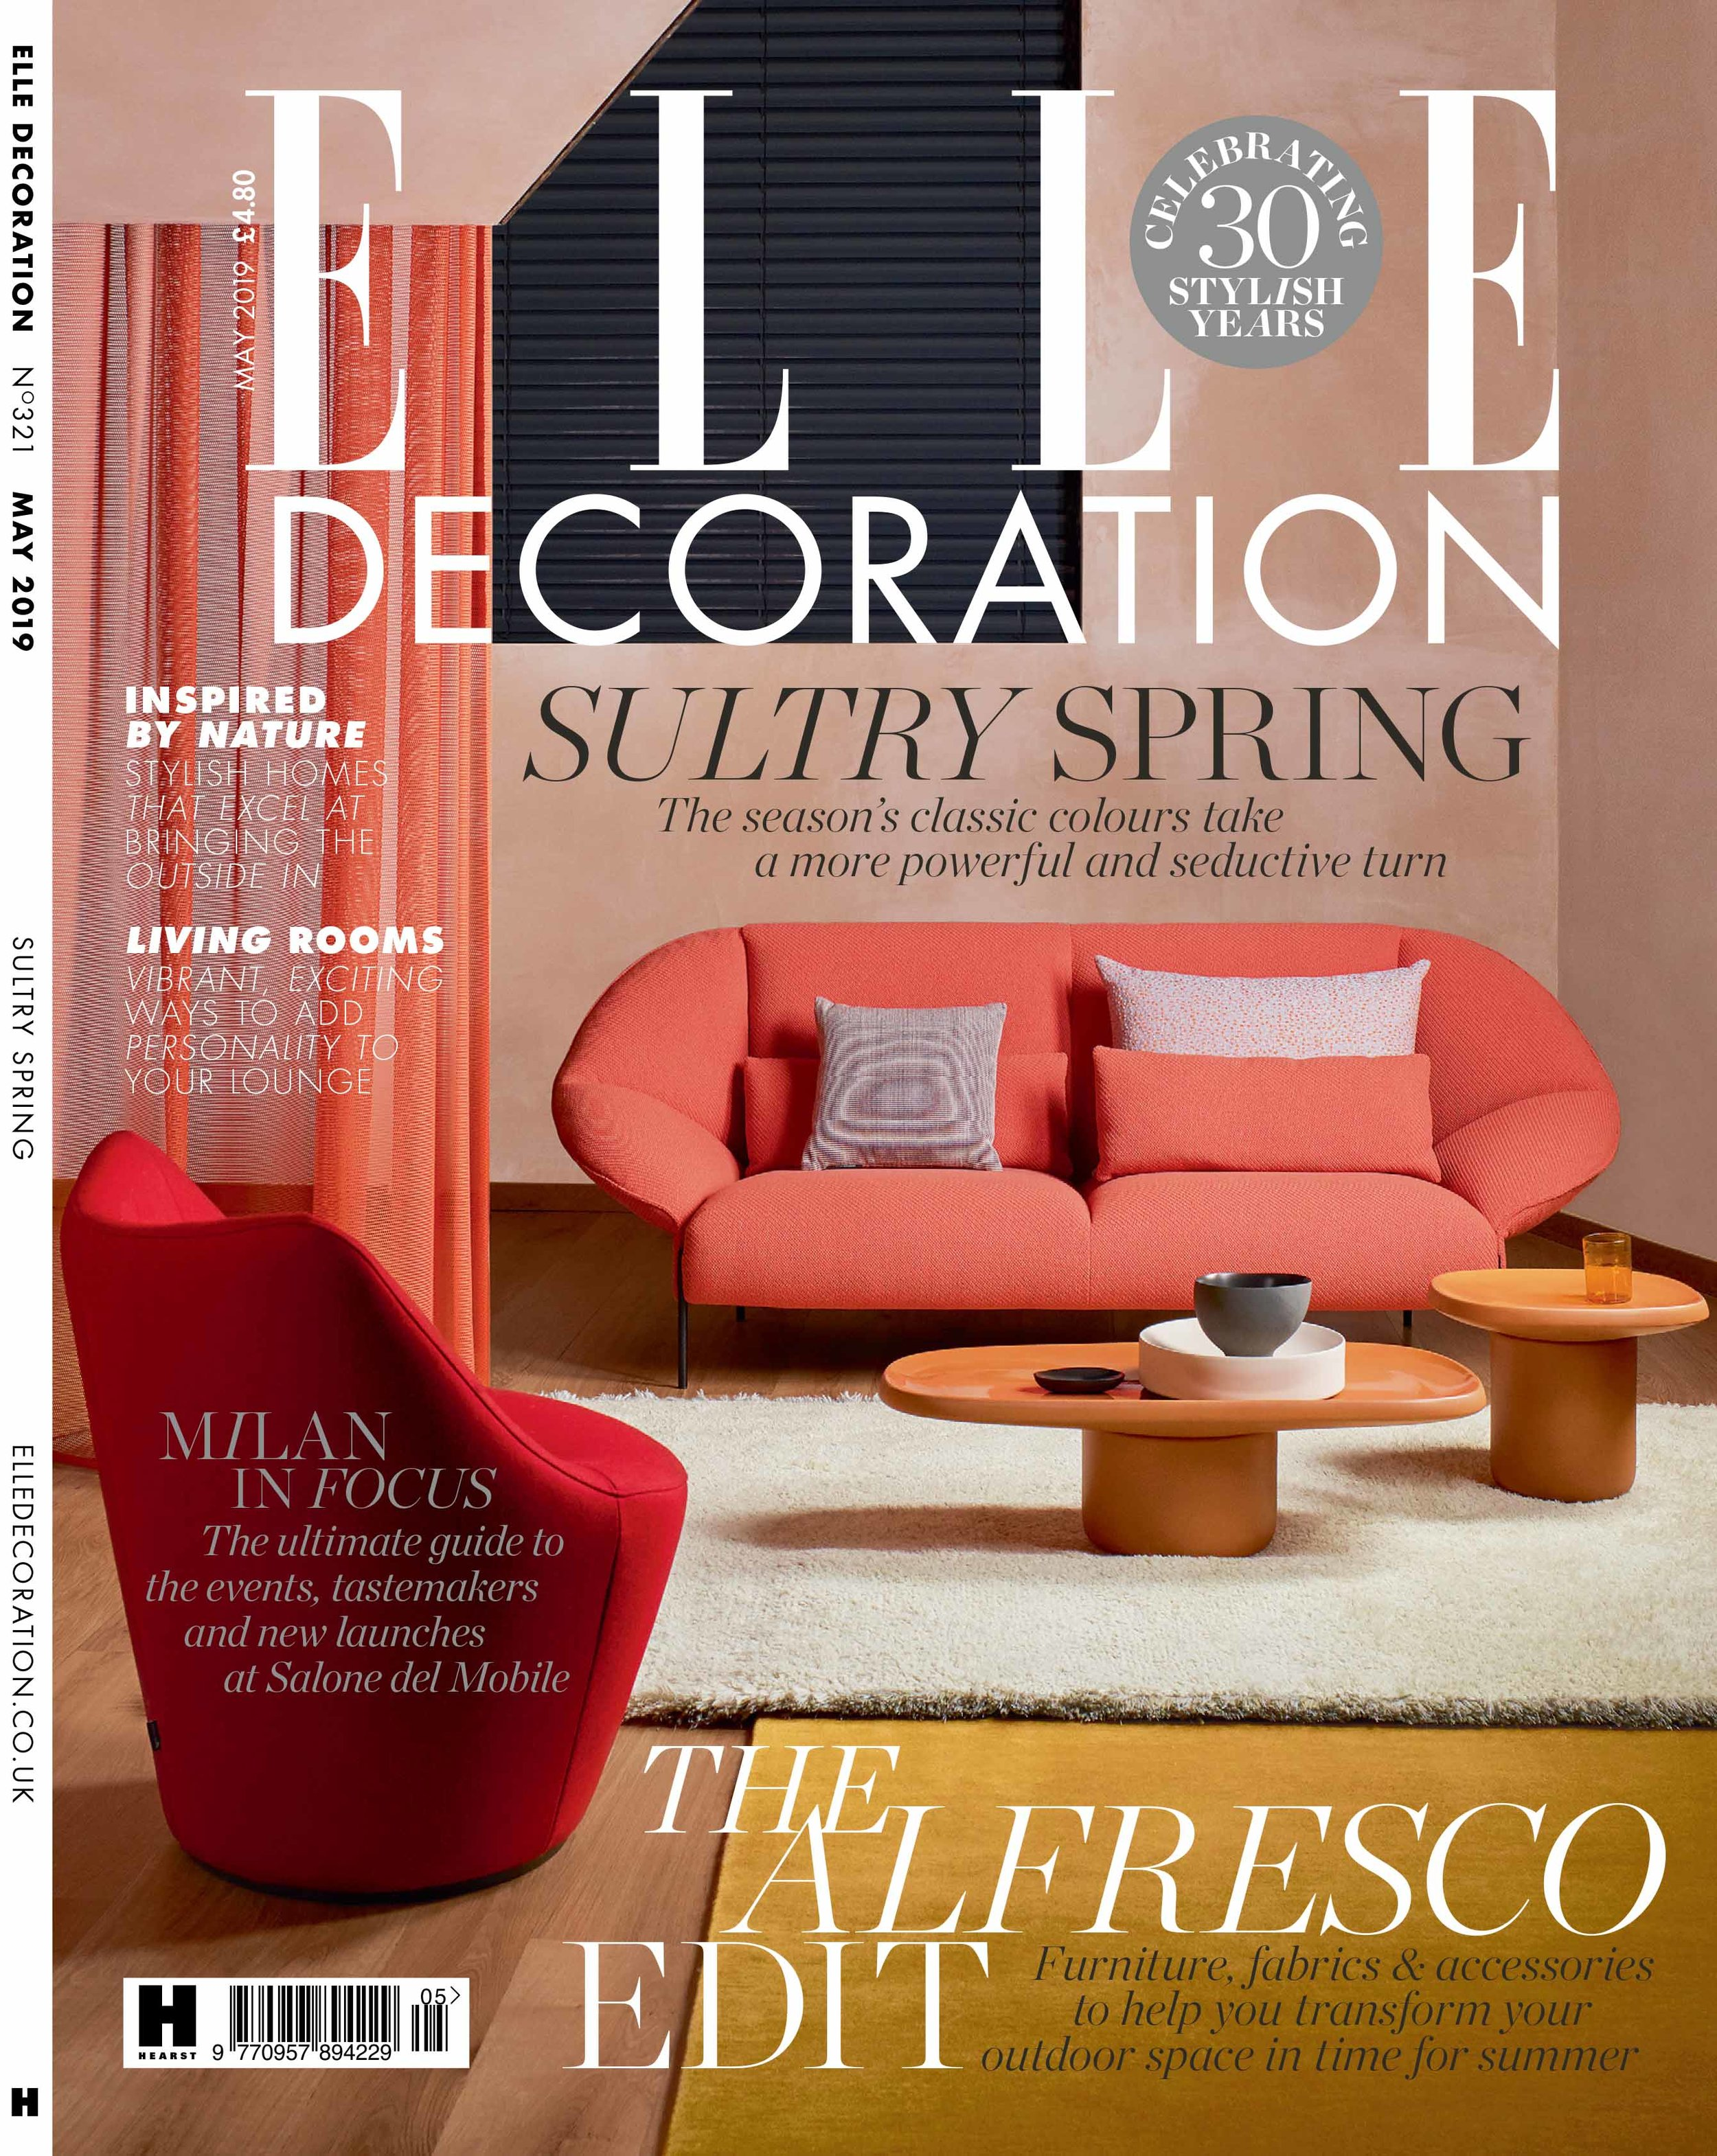 Francesco meda cover elle decor uk.jpg